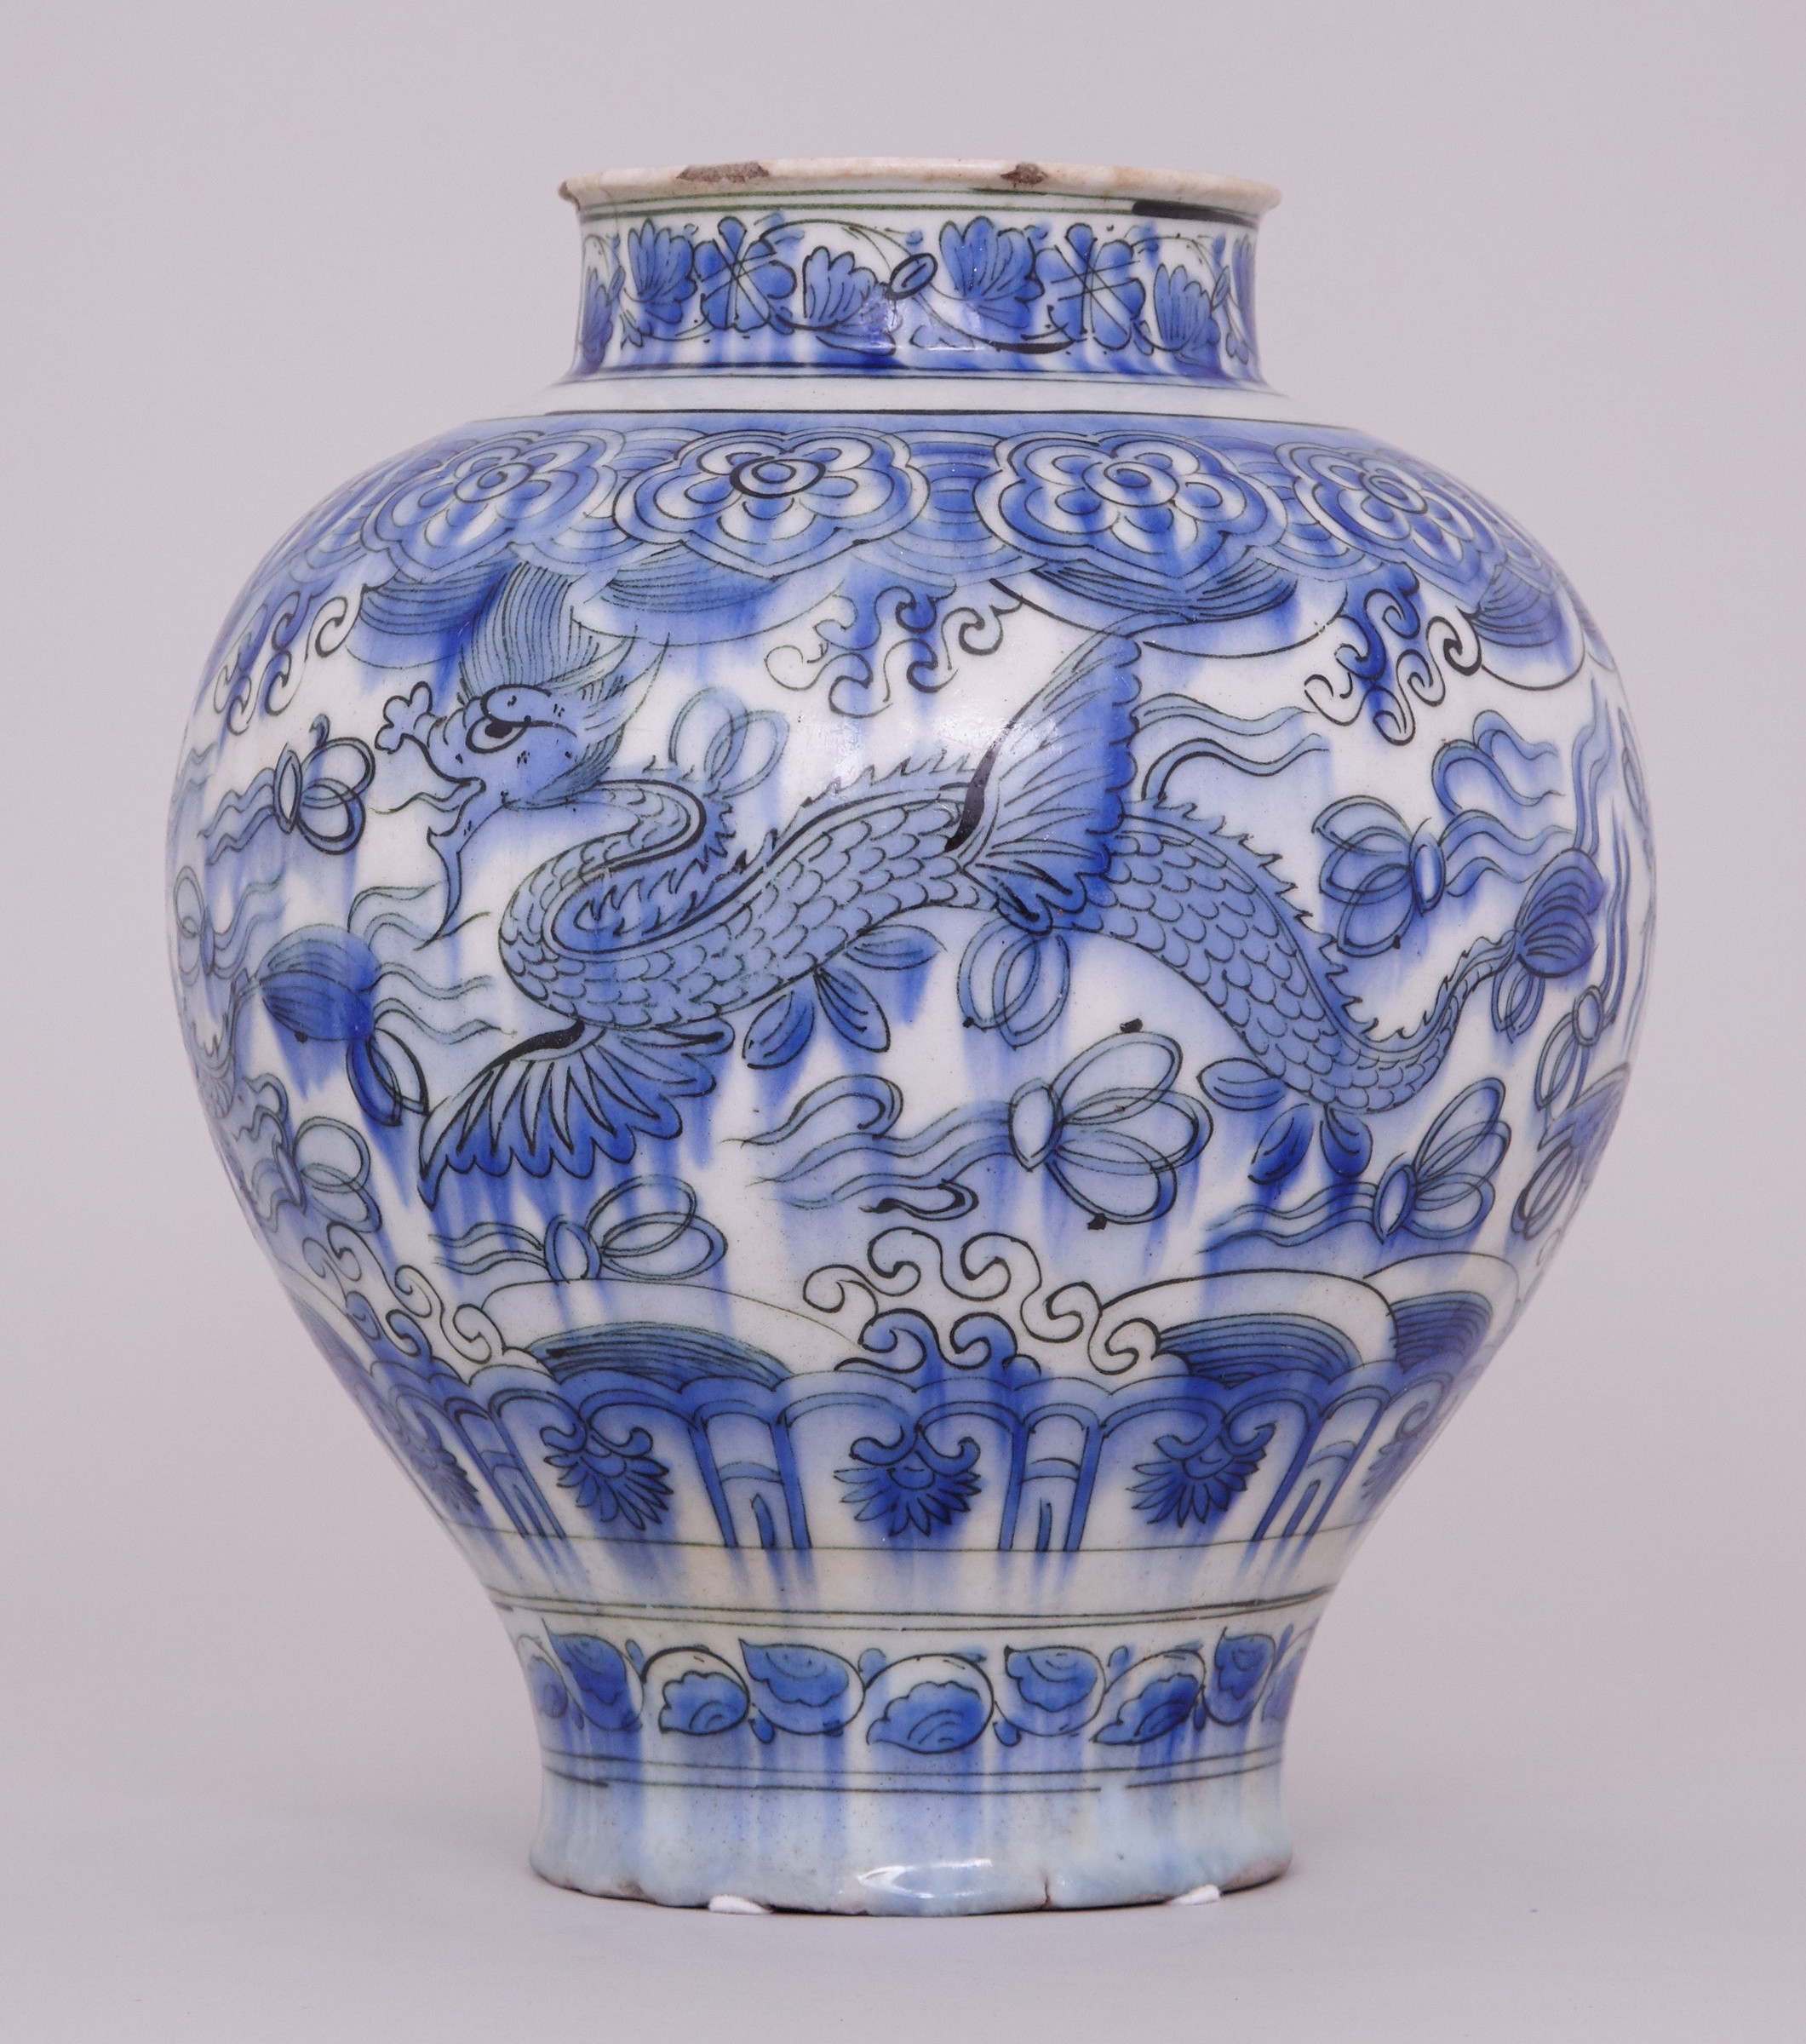 19 Unique Blue White Porcelain Vase